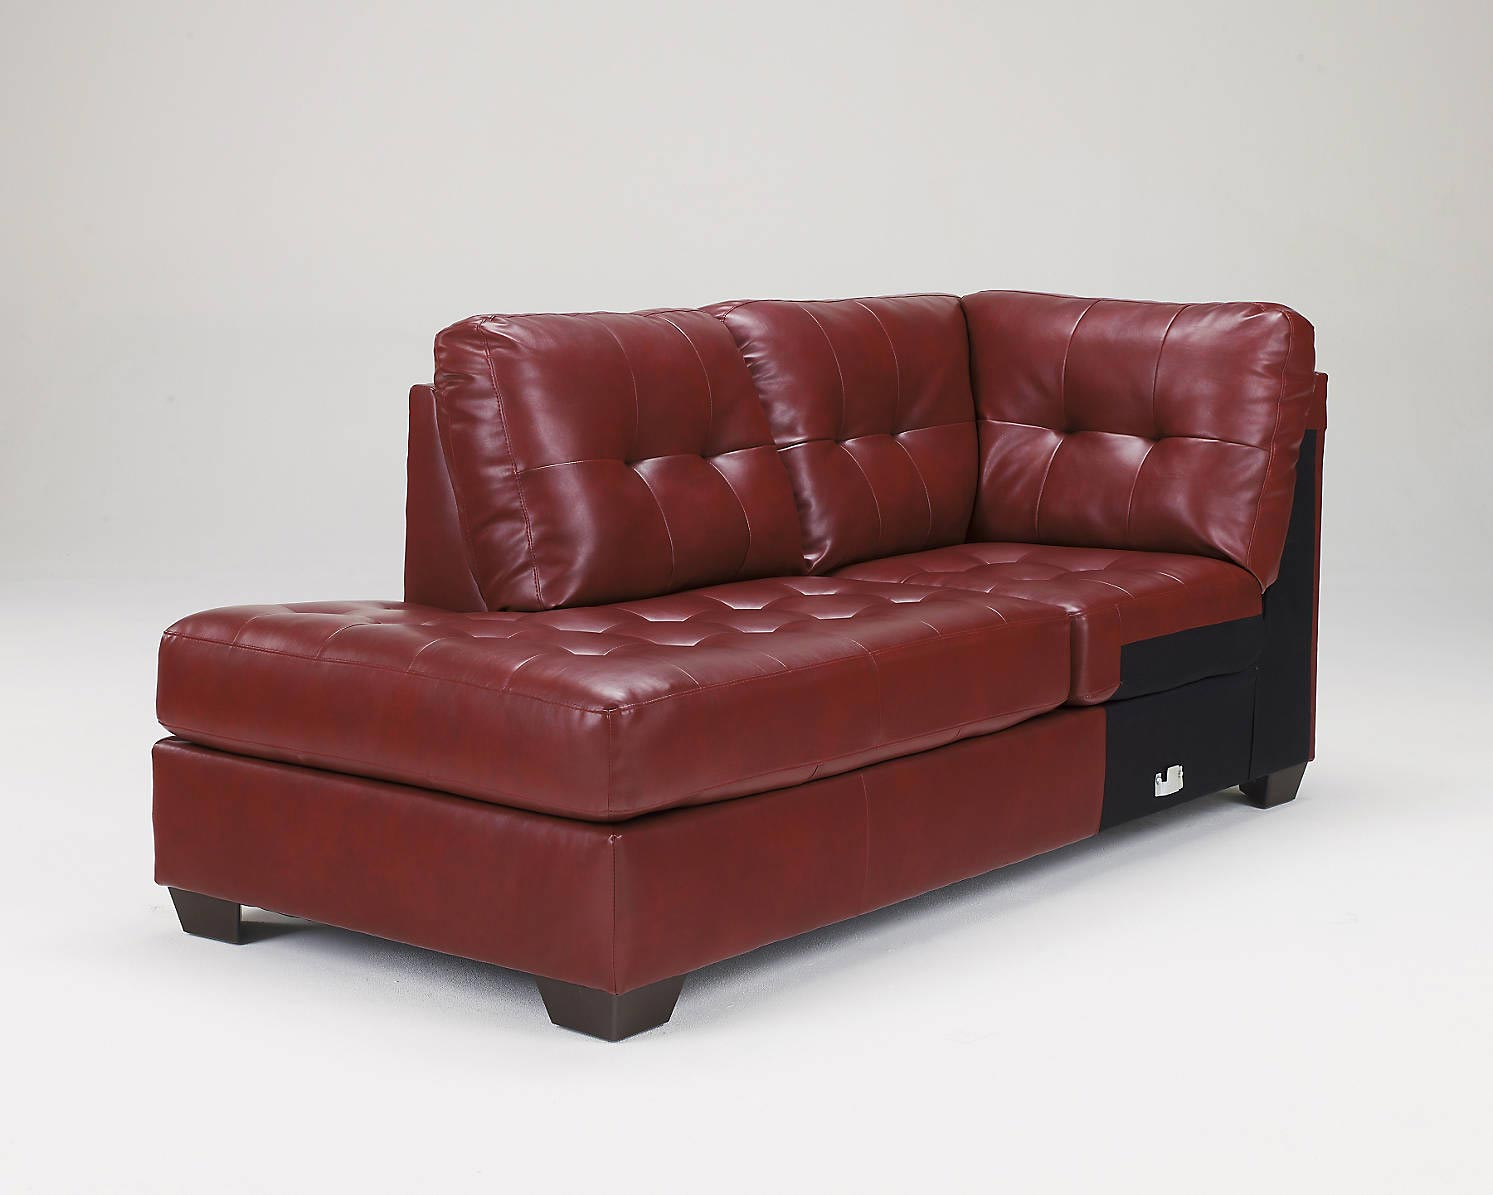 Admirable Alliston 2 Piece Sectional Gonzalez Furniture Caraccident5 Cool Chair Designs And Ideas Caraccident5Info